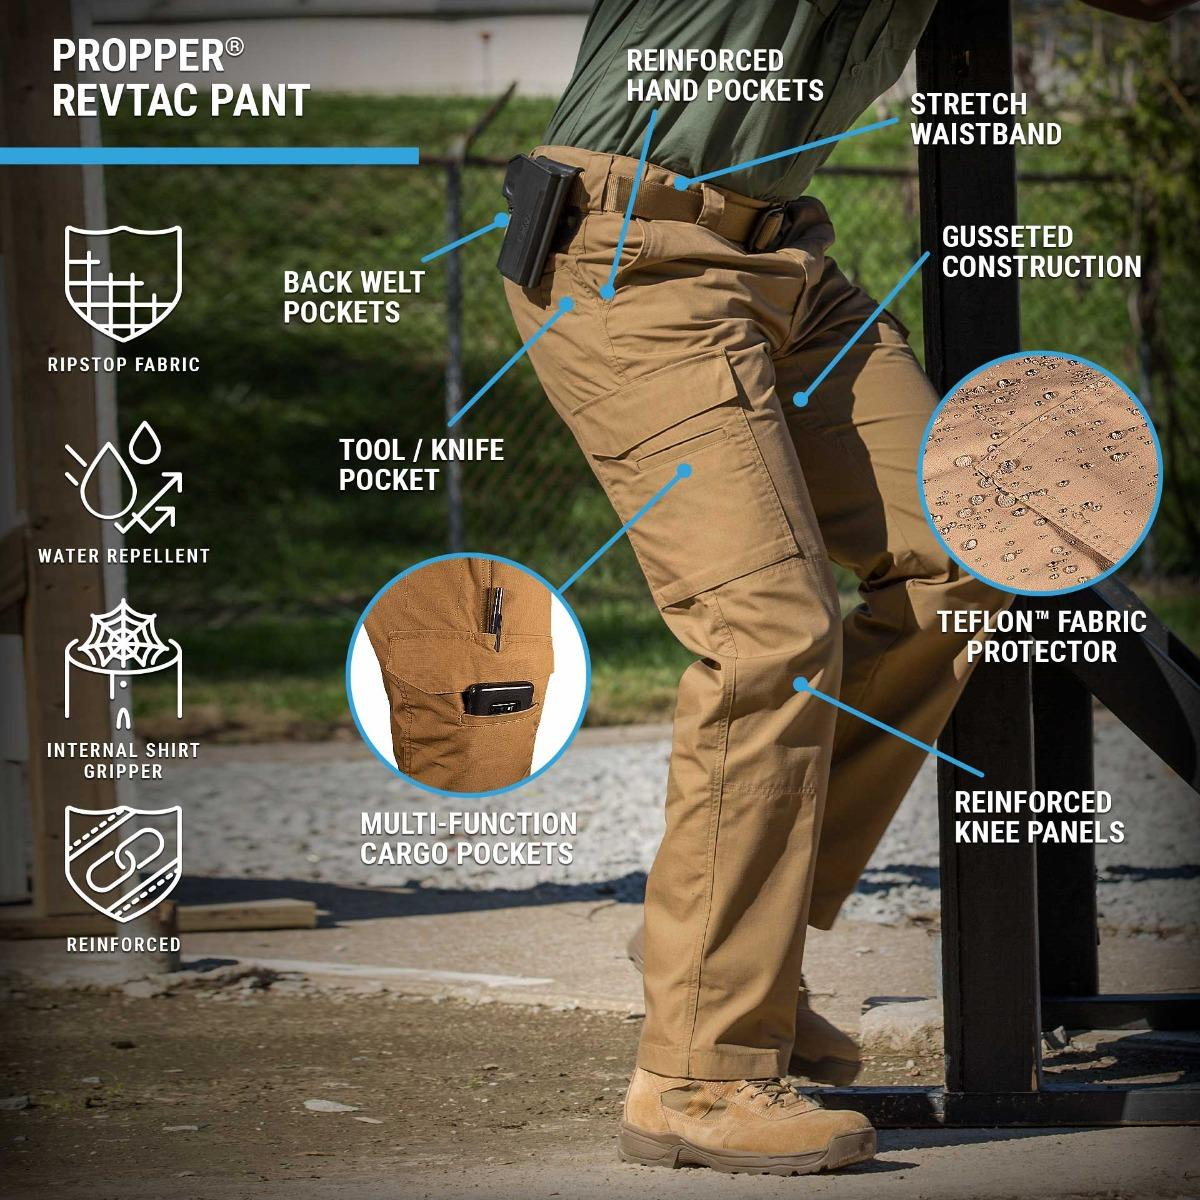 RevTac Tactical Pants have a slider waistband with gusseted construction, DWR and cargo pockets in a modern updated design.